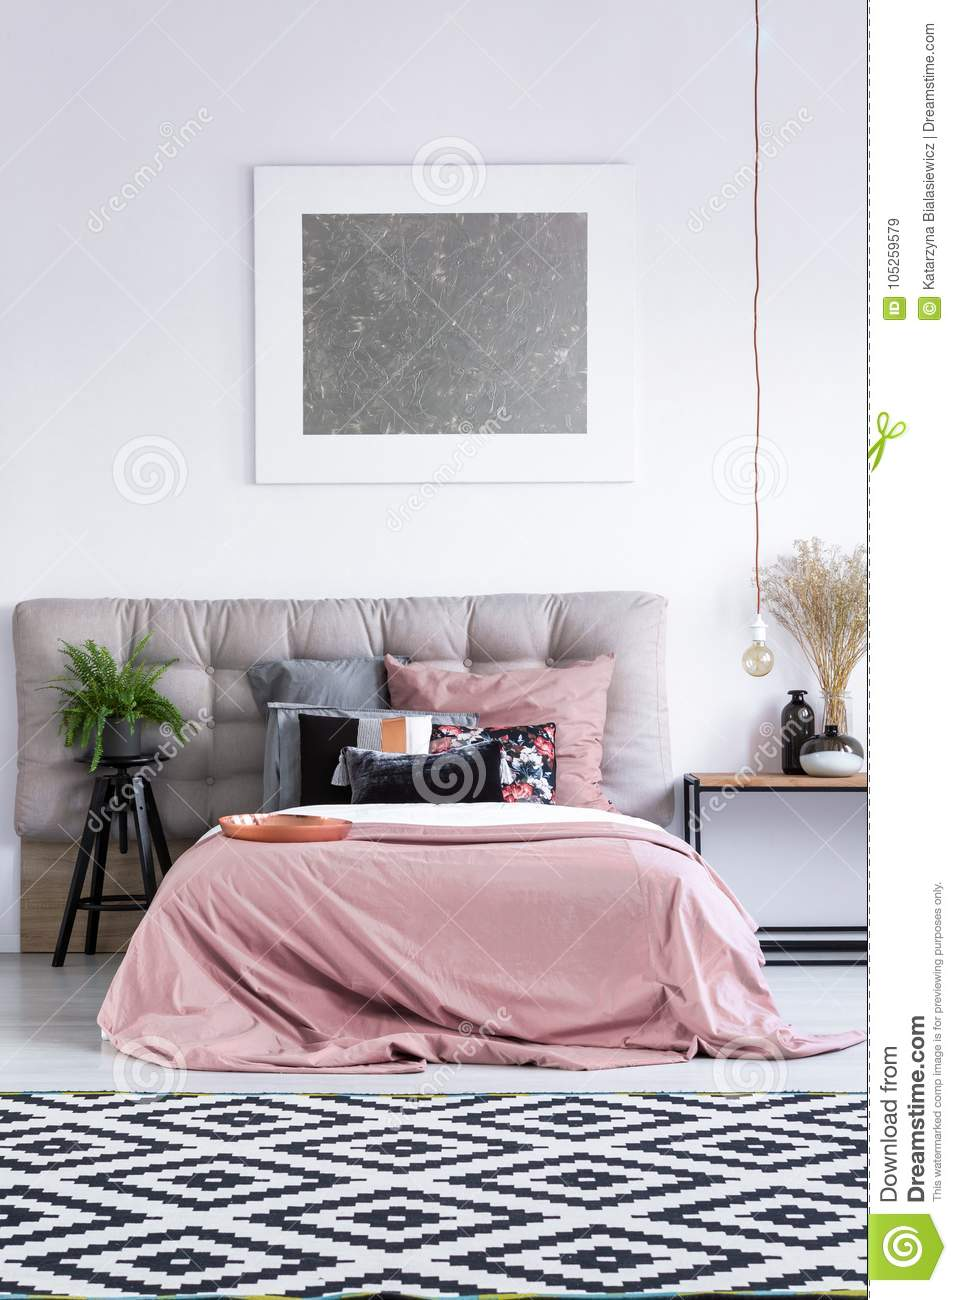 Modern Artwork And Pink Bedding Stock Image Image Of House Bulb